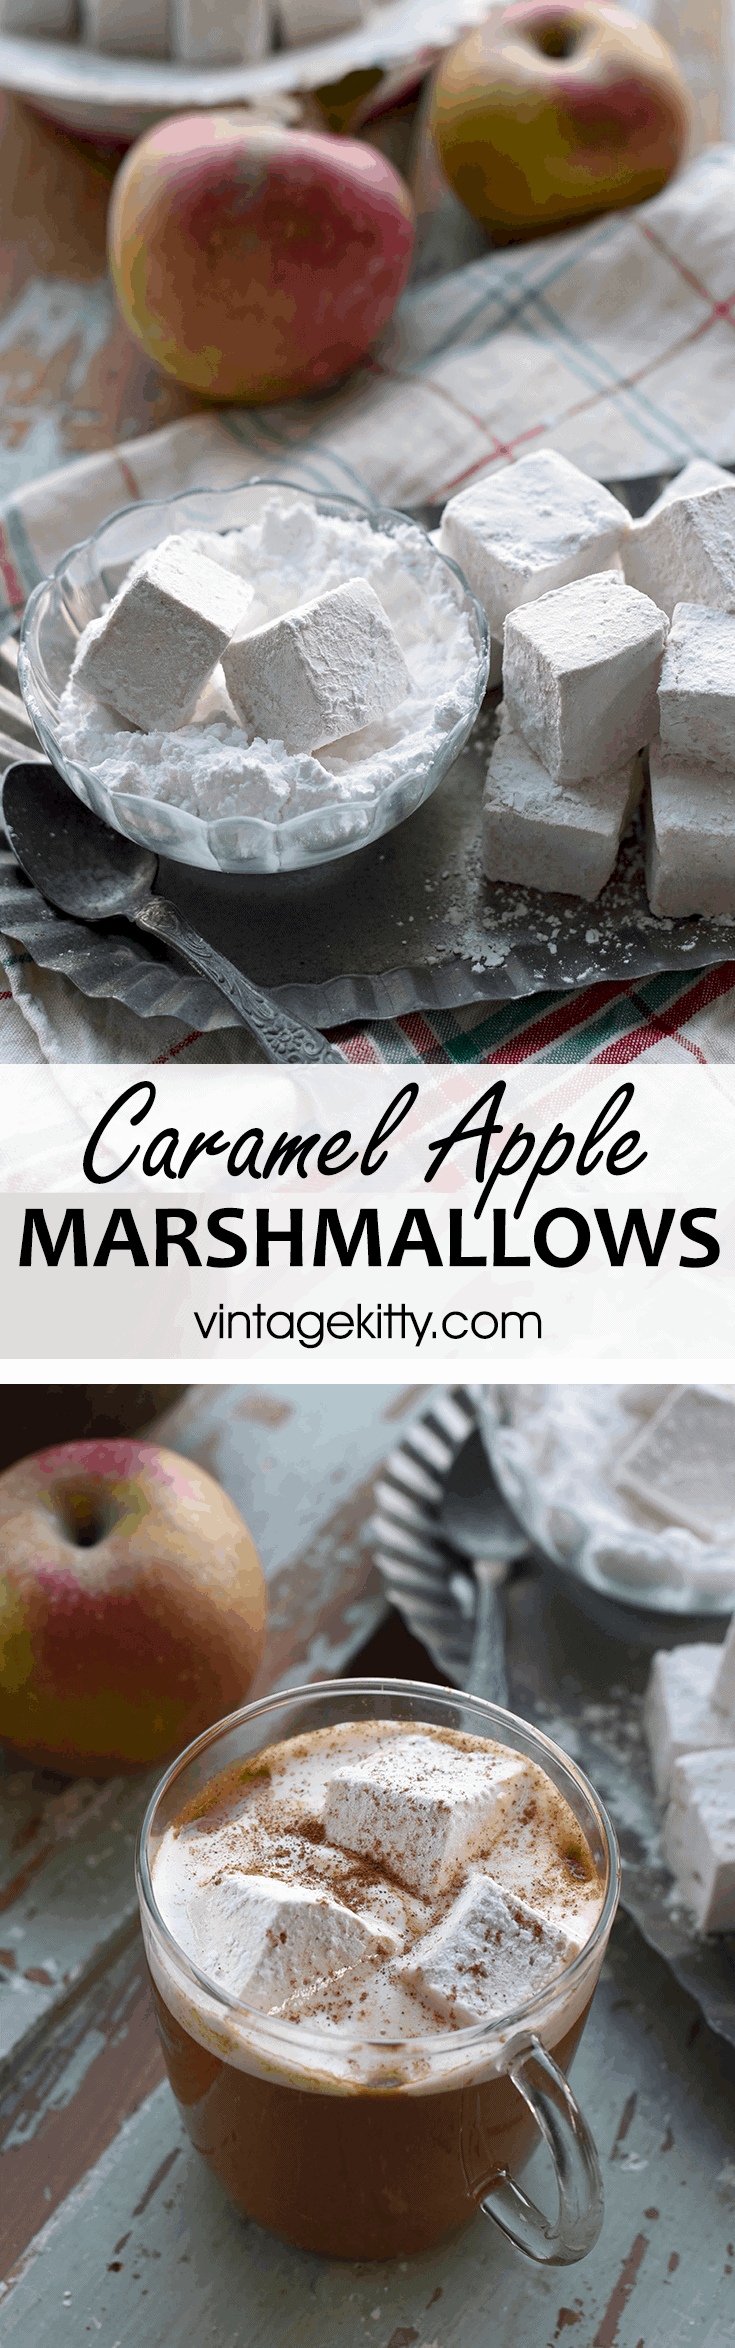 Delicious roasted over an open fire or in #hotcider, these Caramel Apple Marshmallows are an #easydessert to make for fall gatherings, or holiday gift giving.